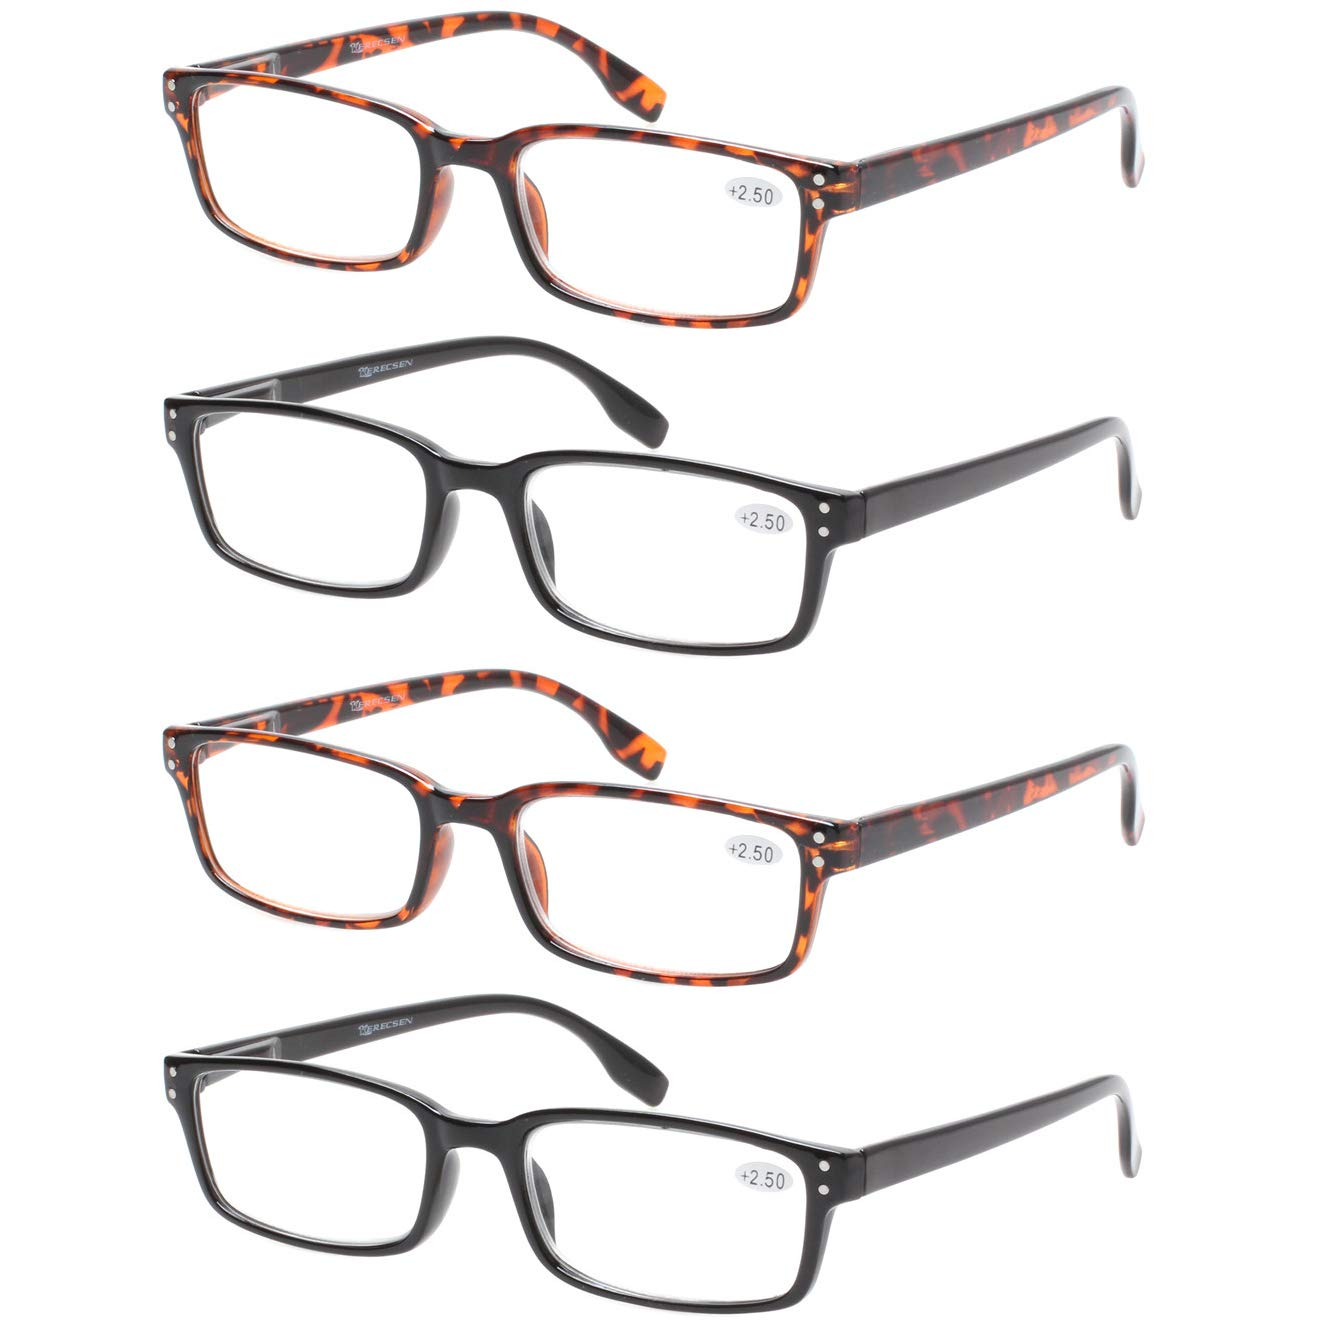 e15ccbe3f3 READING GLASSES 4 Pack Spring Hinge Comfort Readers Plastic Includes Sun  Readers product image